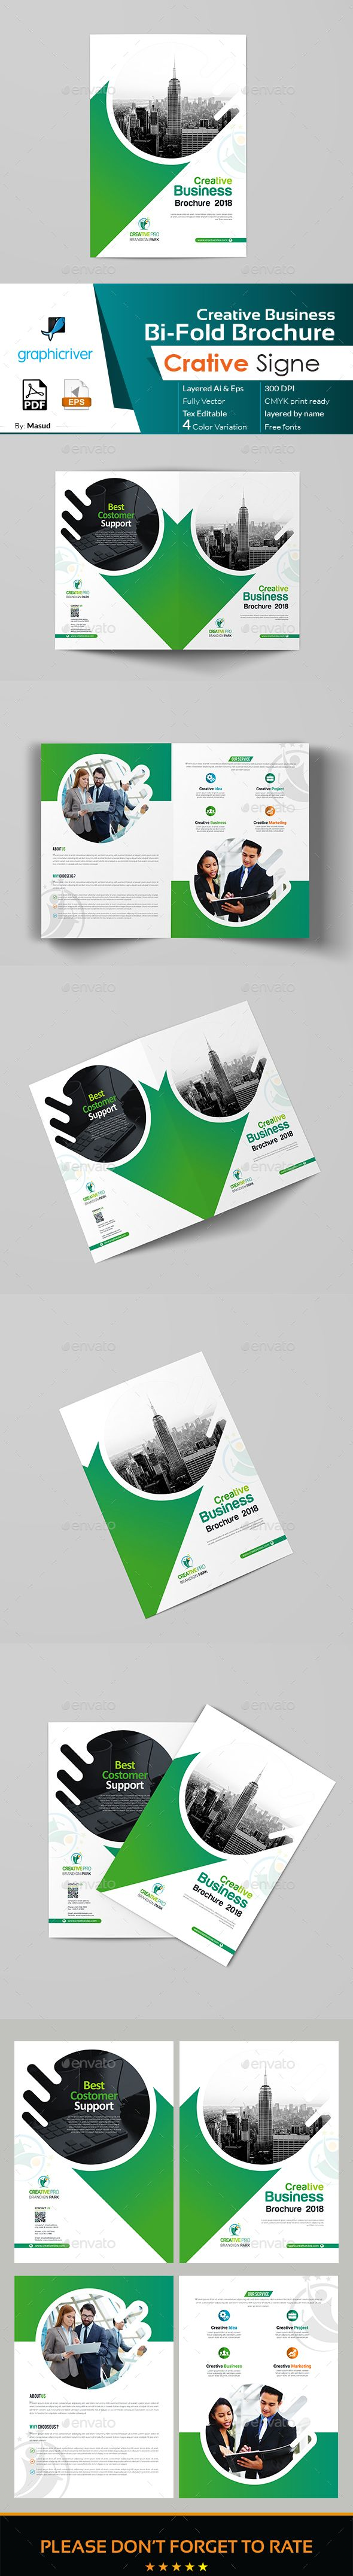 Business bi fold brochure template vector eps ai for Bi fold brochure template illustrator